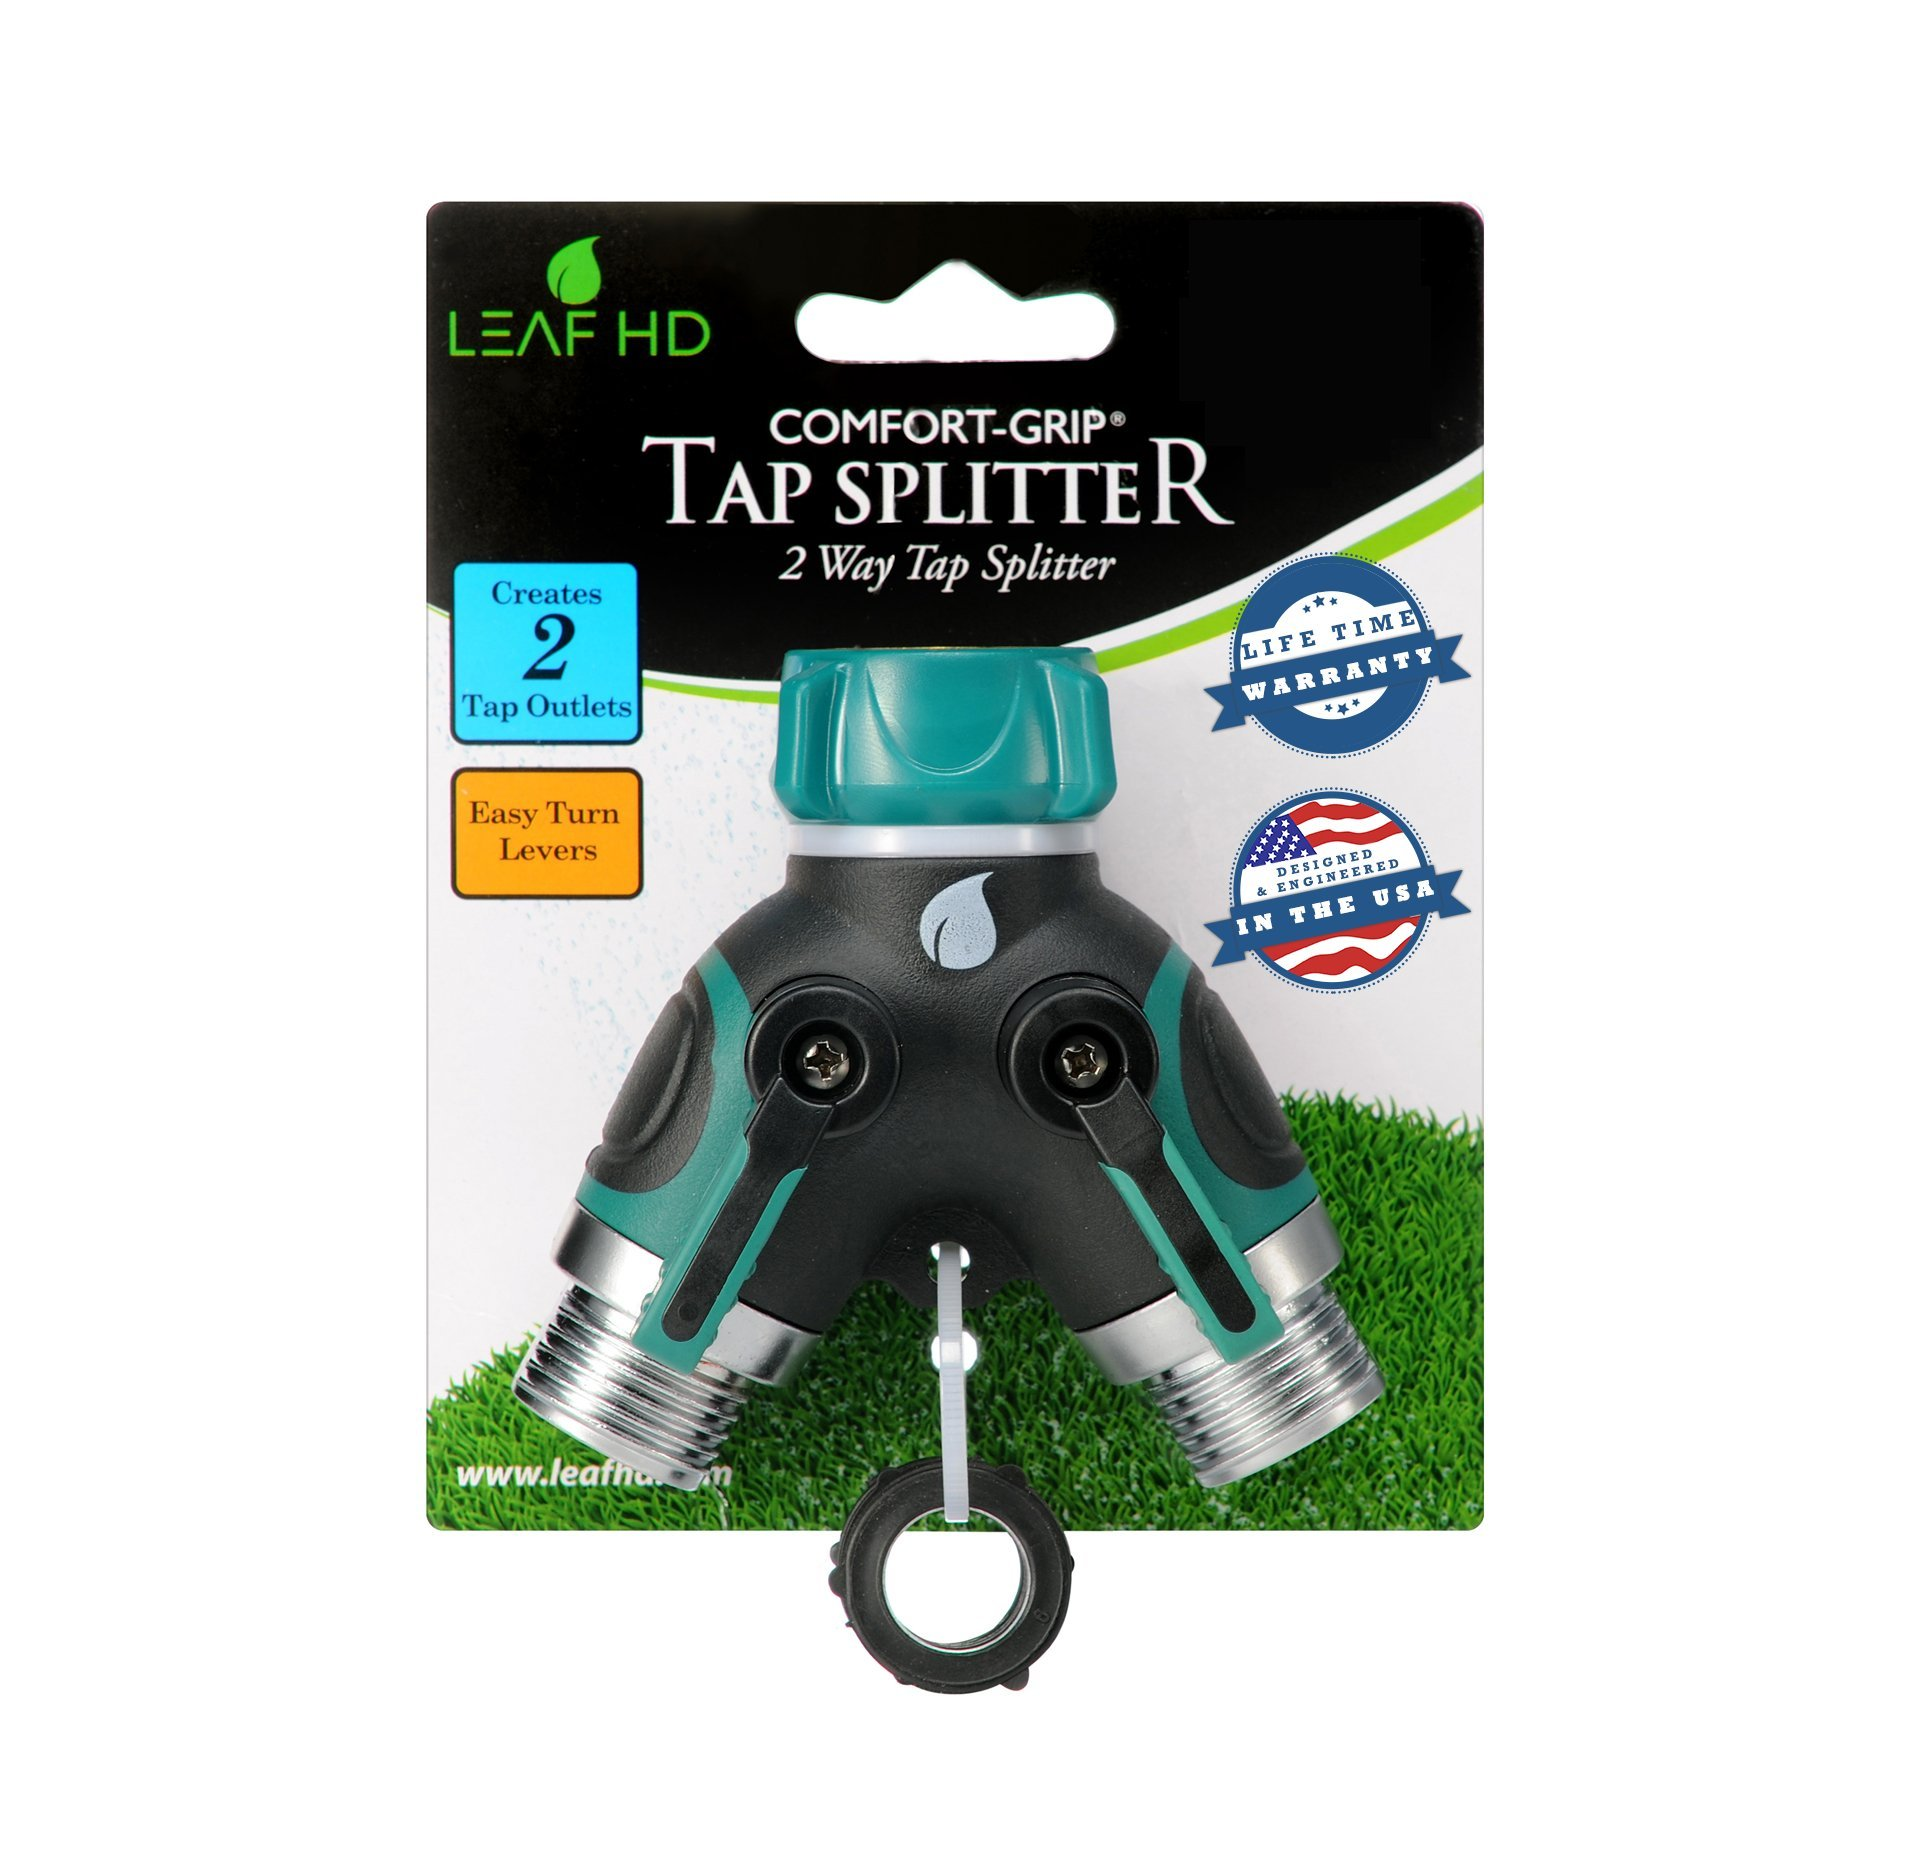 LEAF HD ZX-9 1 Garden Hose Splitter Y Ball Valve Connector with Soft Touch EZ Turn Levers Designed in MN, USA Bundle with 3 Extra Rubber Washers